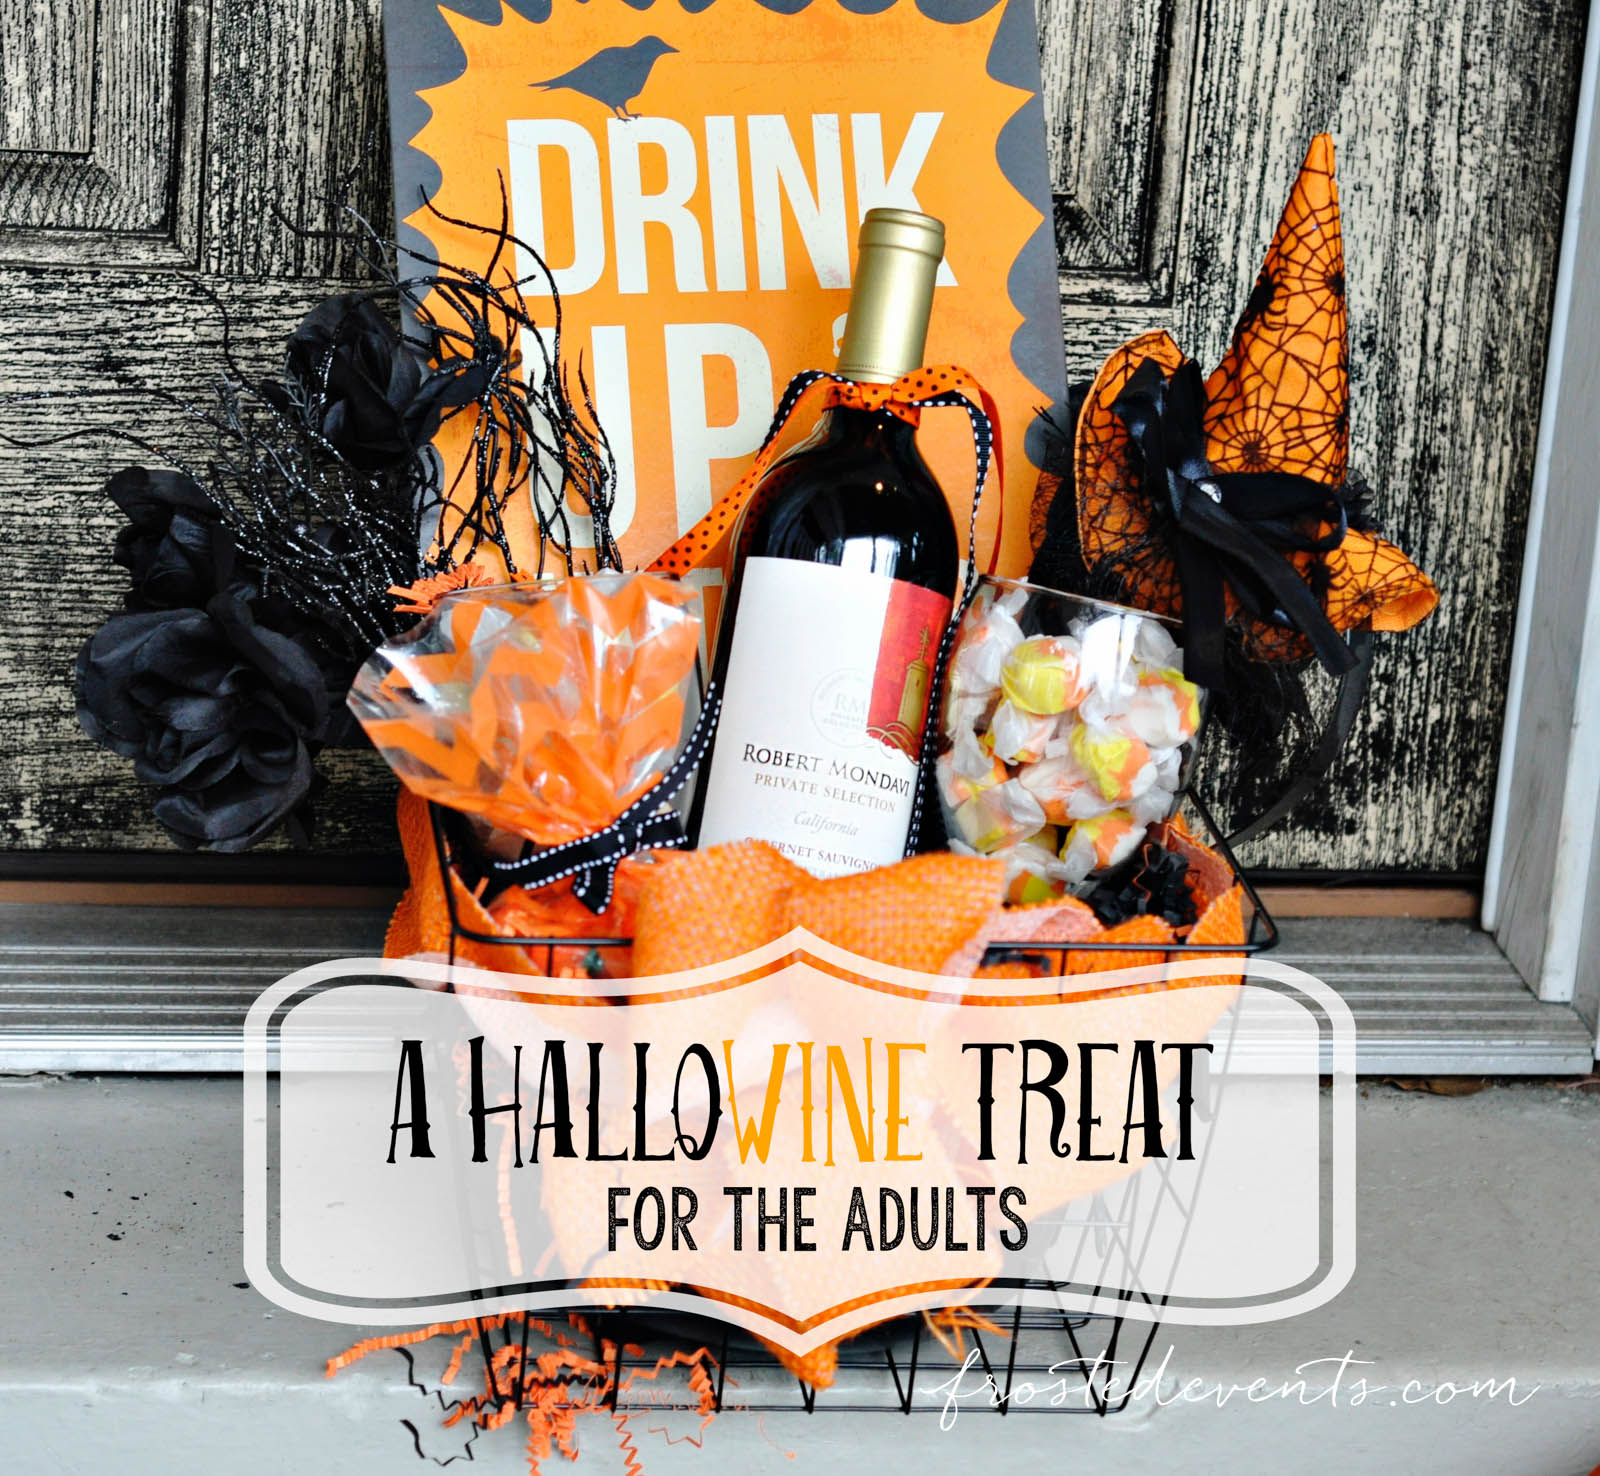 HalloWINE-DIY-halloween-gift-basket-robert-mondavi-wine-youve-been-boozed-boo-kite-06Quick-and-Easy-Snacks-and-Lunch-Ideas-Arla-Cheese-Recipes-Snack-to-School